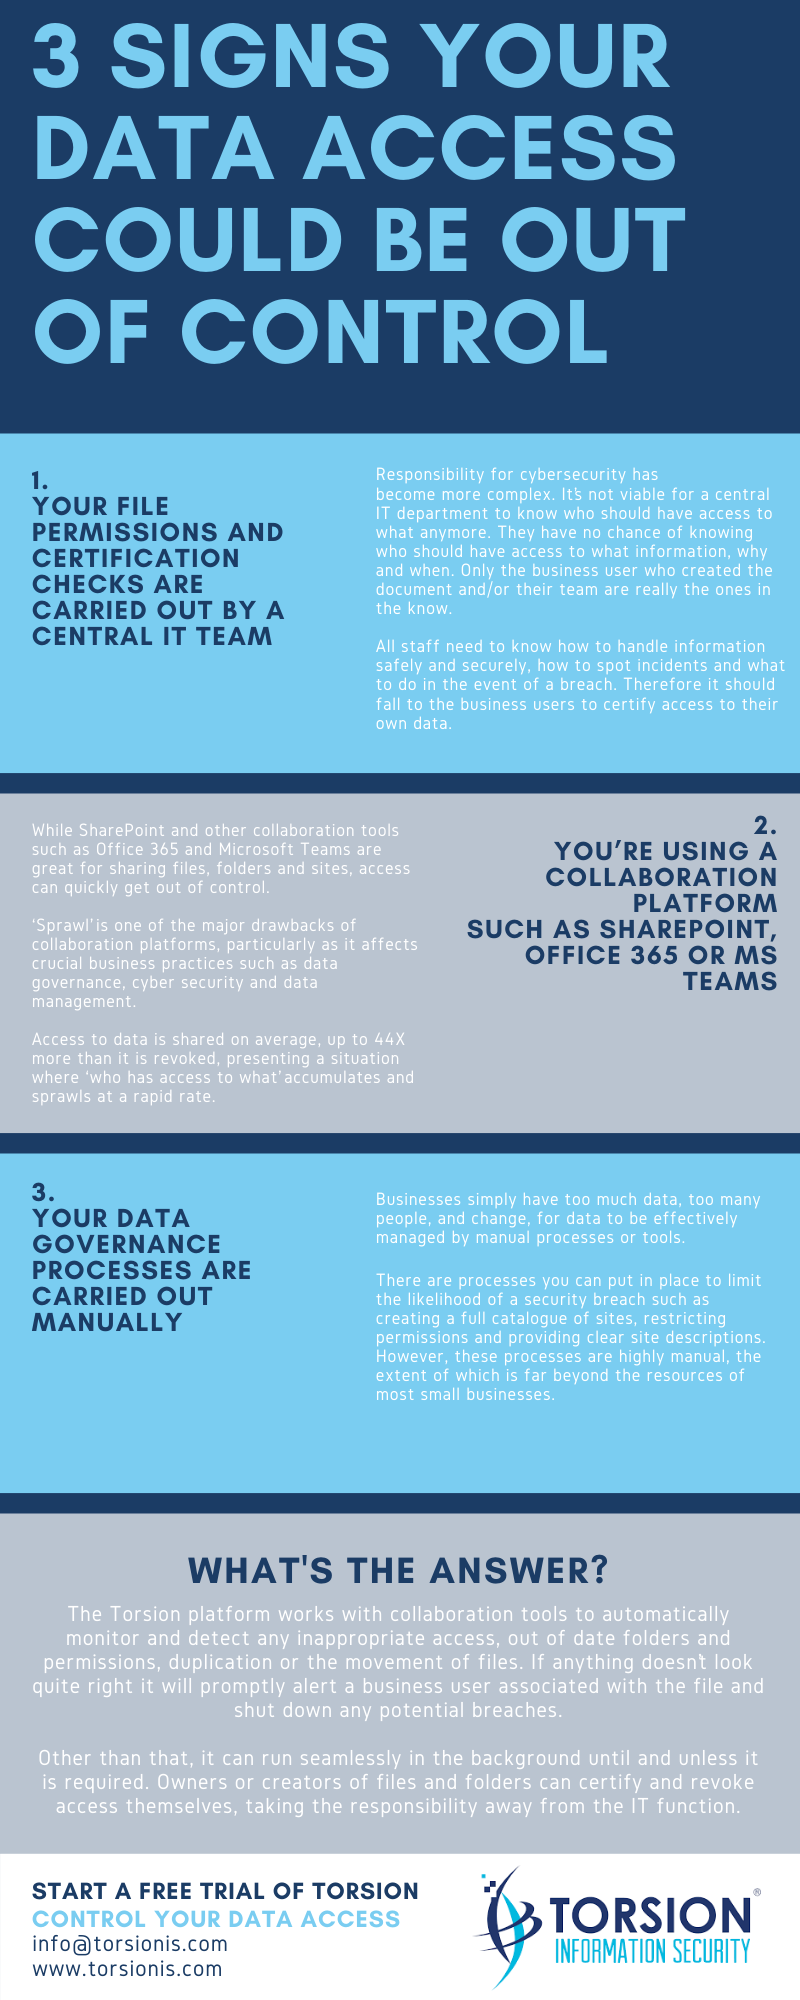 Torsion Infographic - 3 signs your data access could be out of control